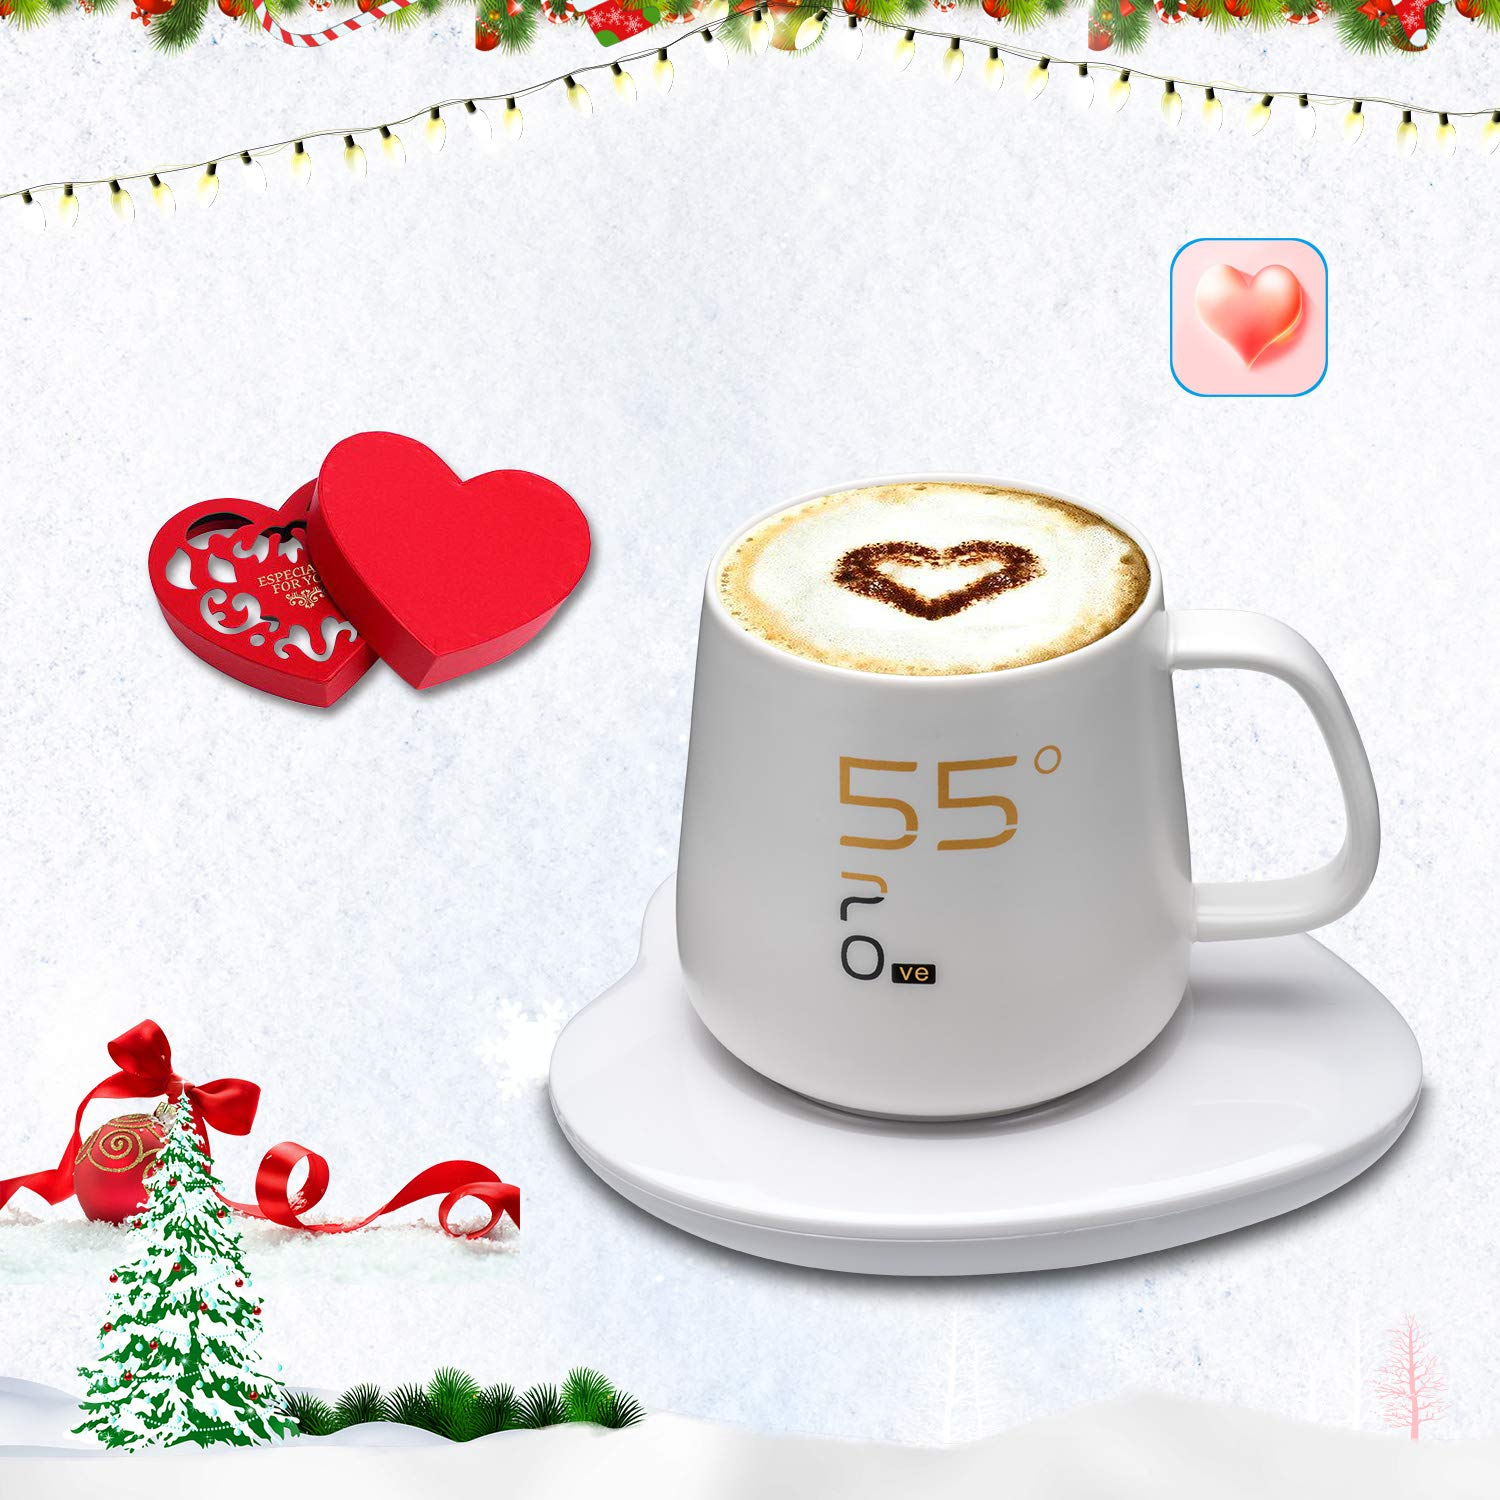 Coffee Cup Mug Warmer,Electric Coffee Cup Beverage Mug Warmer(Milk,Coffee,Drink,Tea)- Lovers'Christmas&Wintter Present OneKing